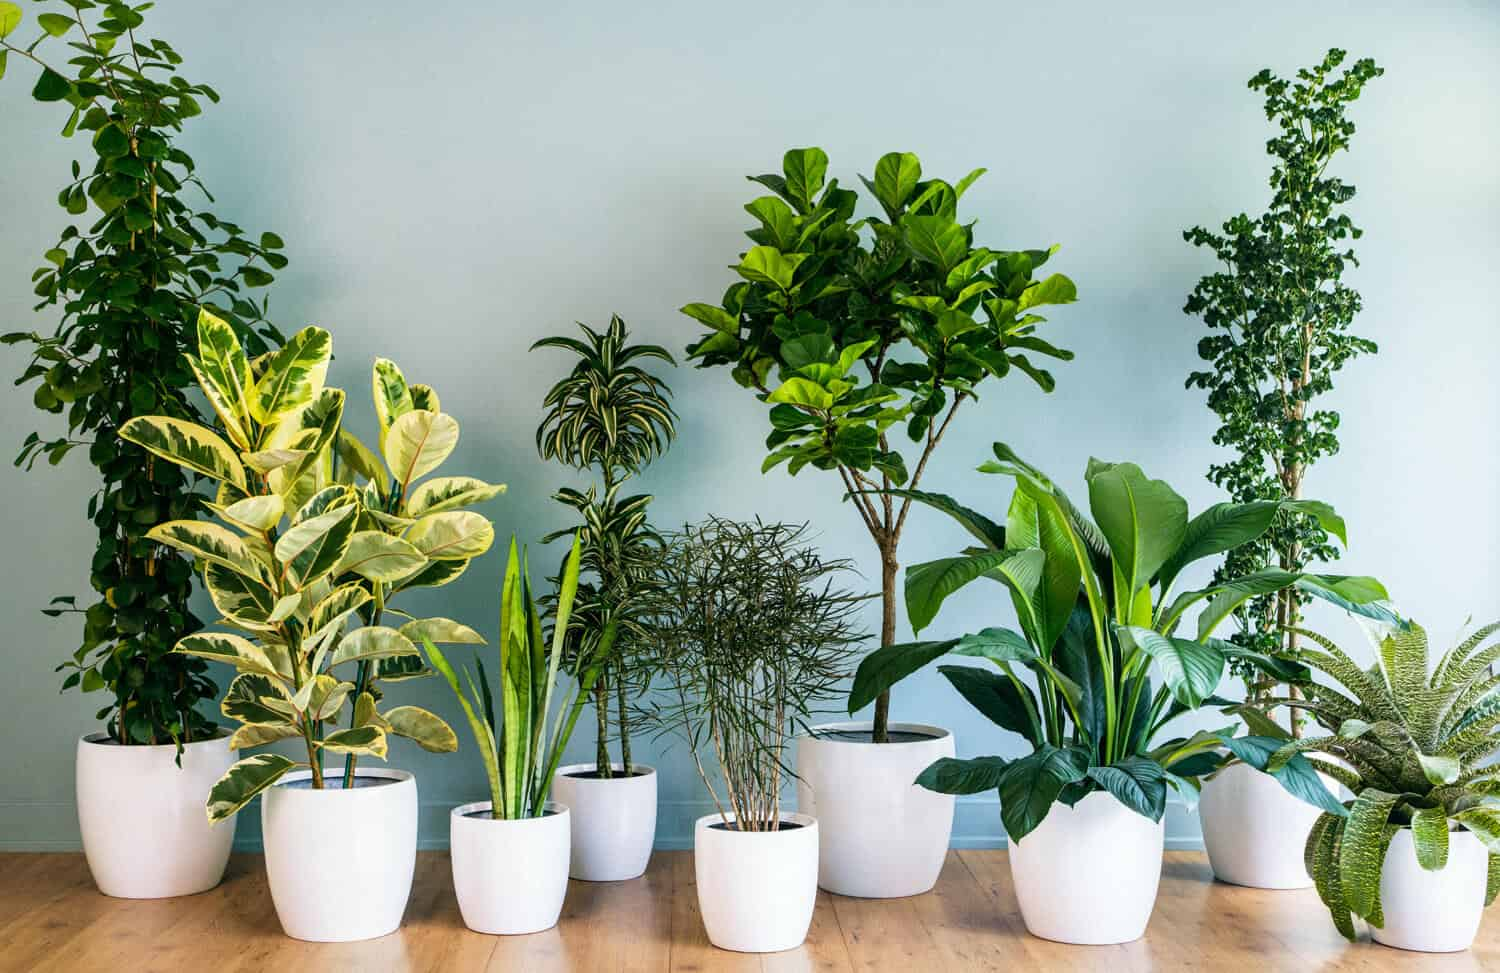 Tall House Plants Low Light 31 low light houseplants that you shouldn't miss out | hort zone